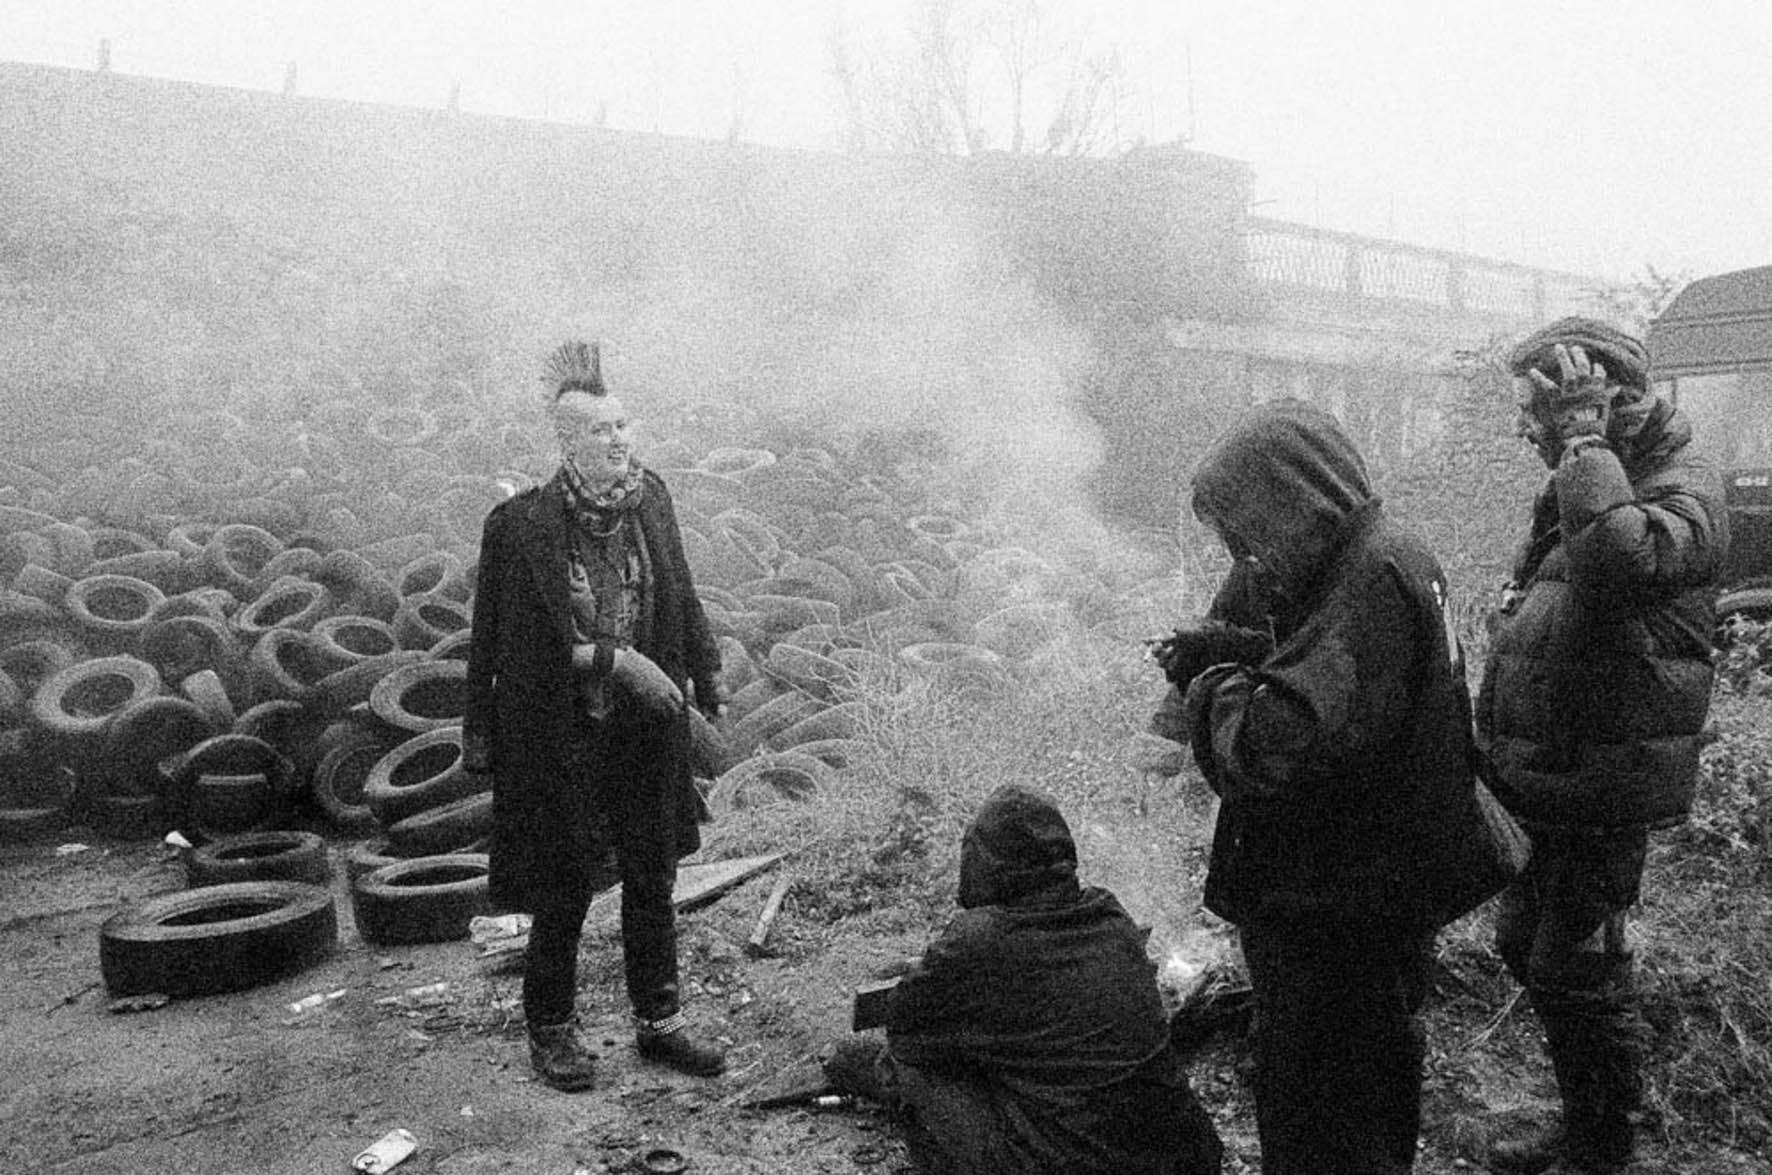 Molly Macindoe - Punk Kath tyres by the fire, The Pumphouse, Abbey lane, Stratford, London, 2002